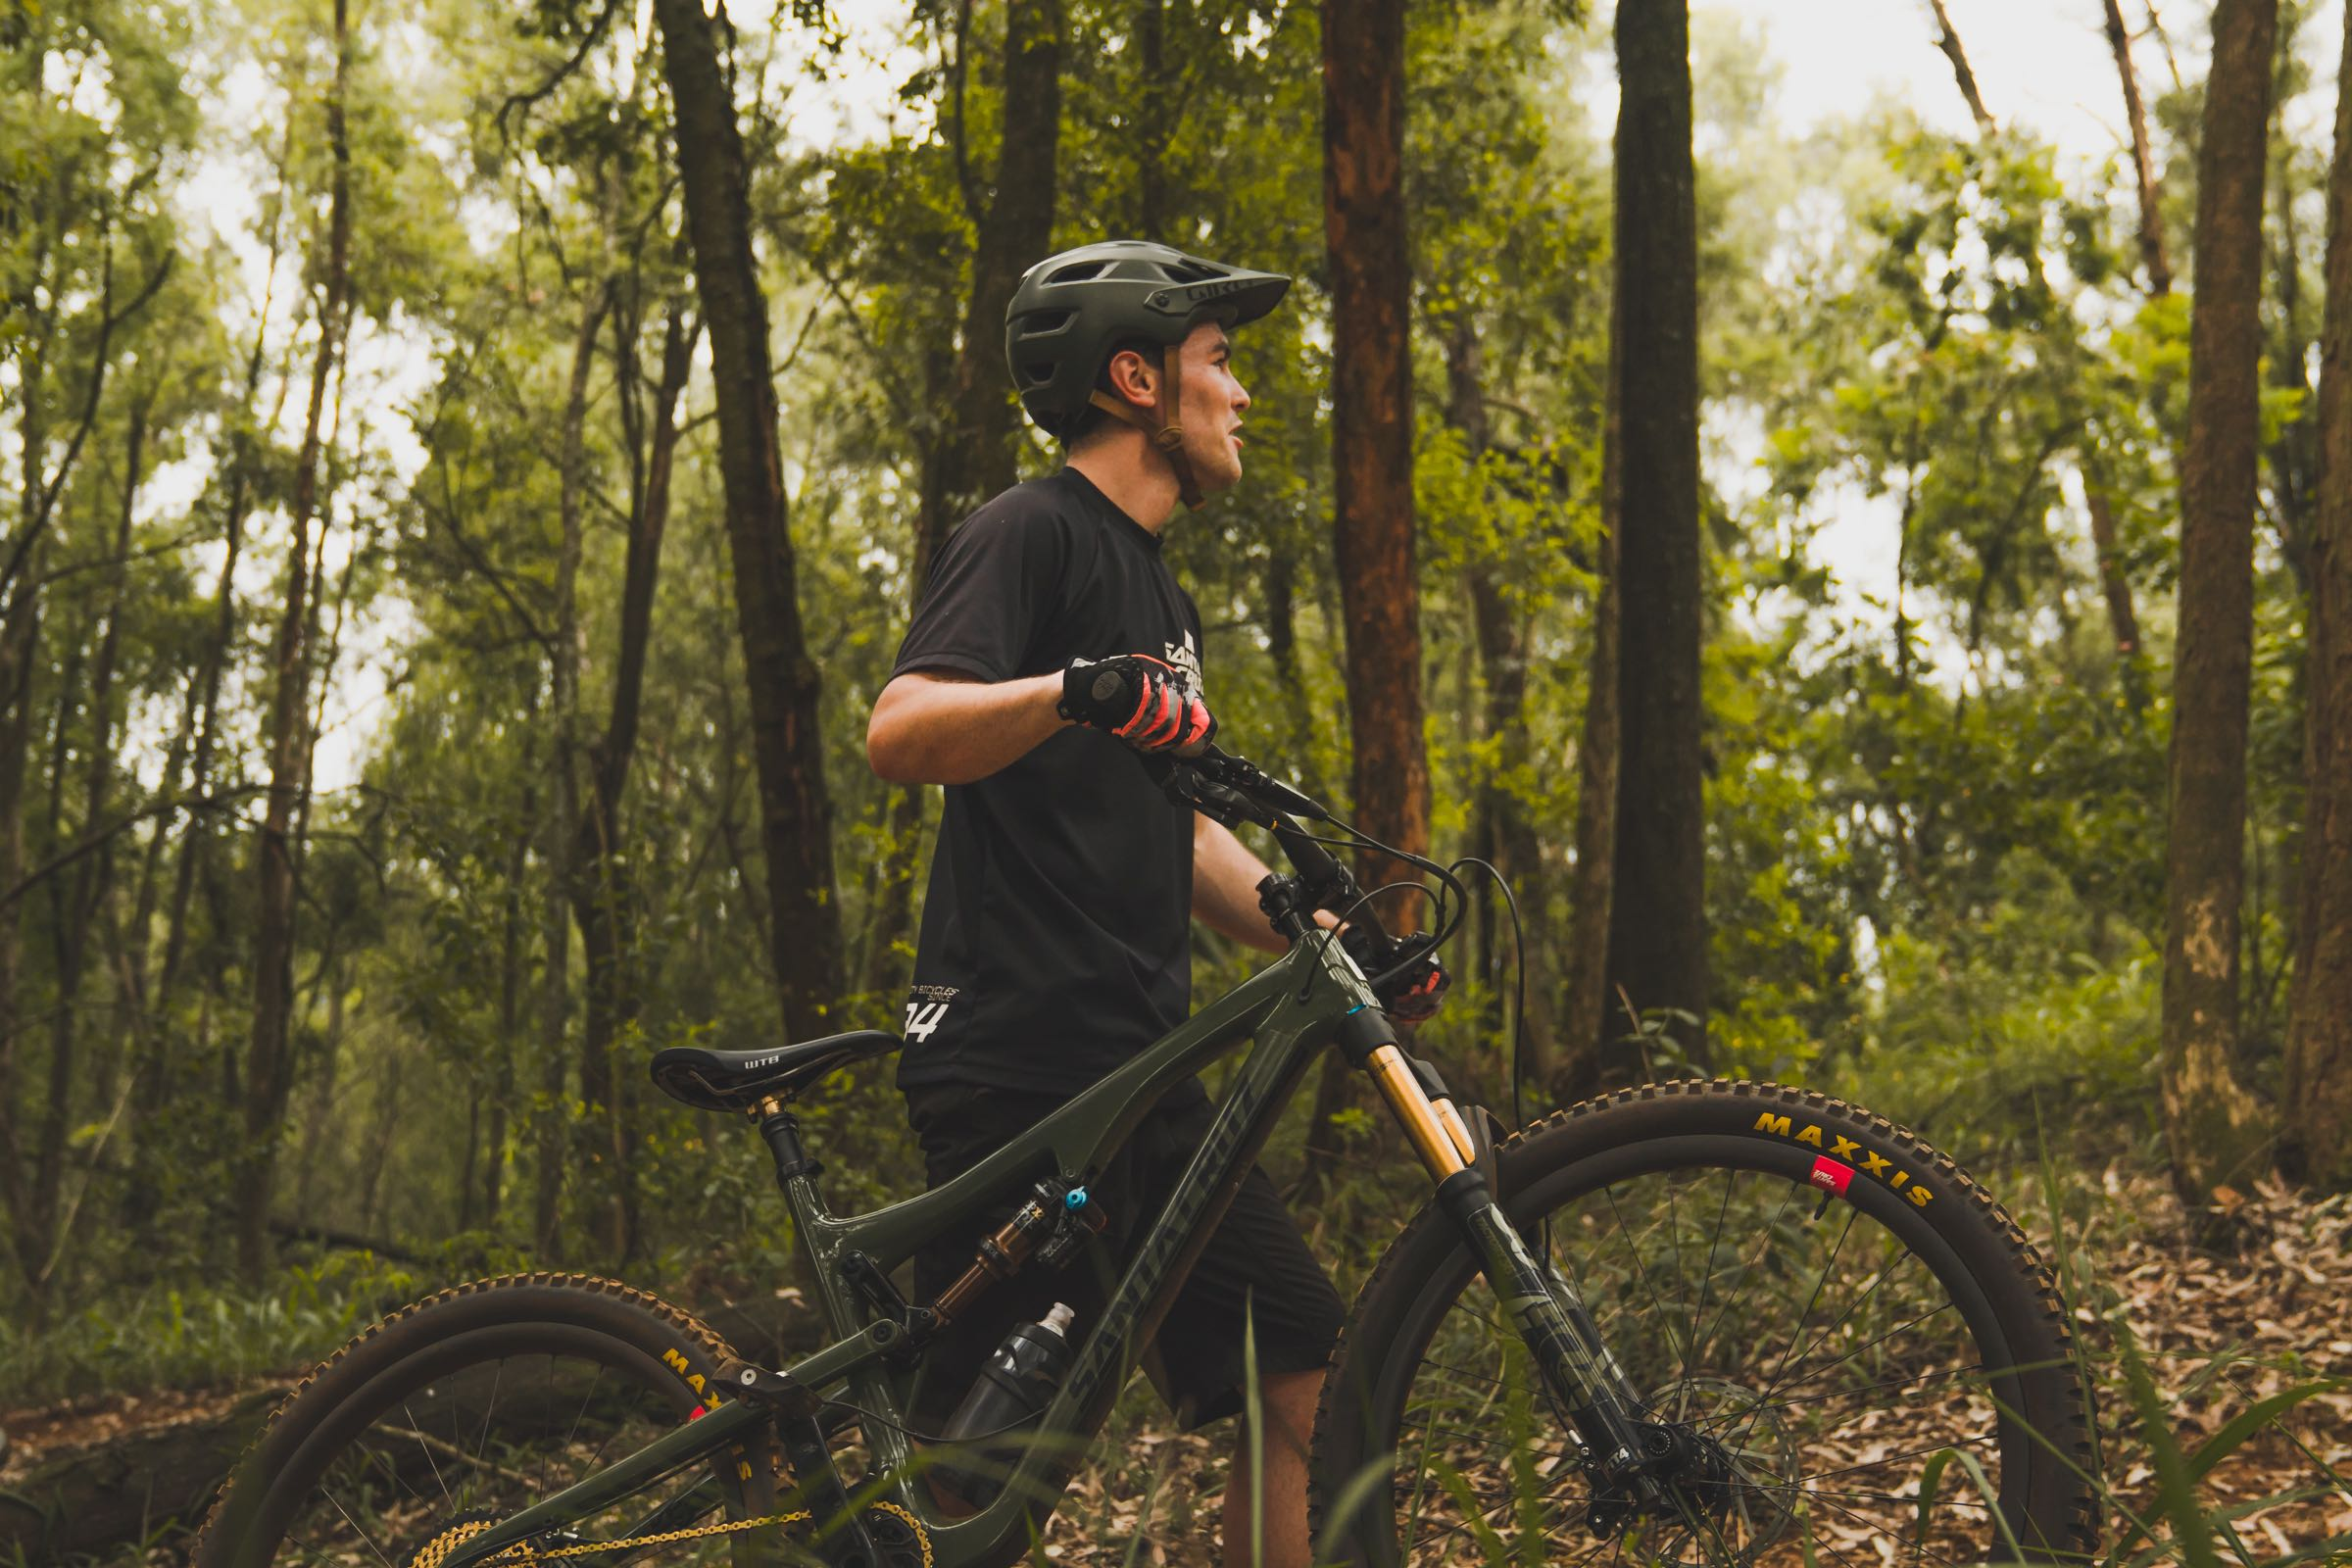 Sam Bull onboard his 2018 Santa Cruz Bronson